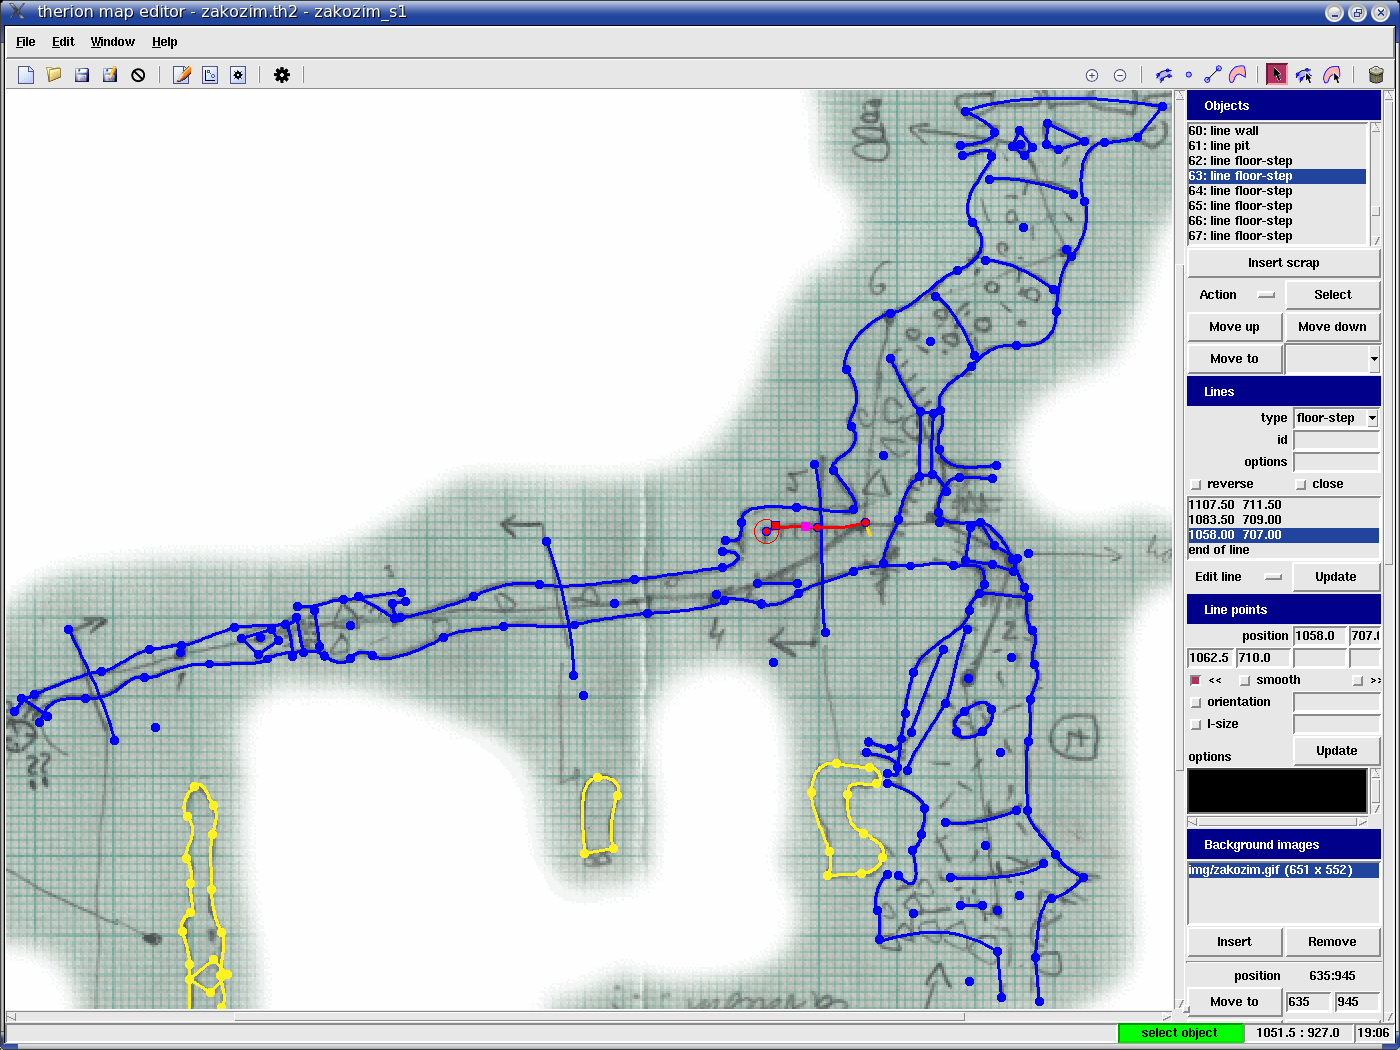 filetherion software map in editorpng. filetherion software map in editorpng  wikimedia commons